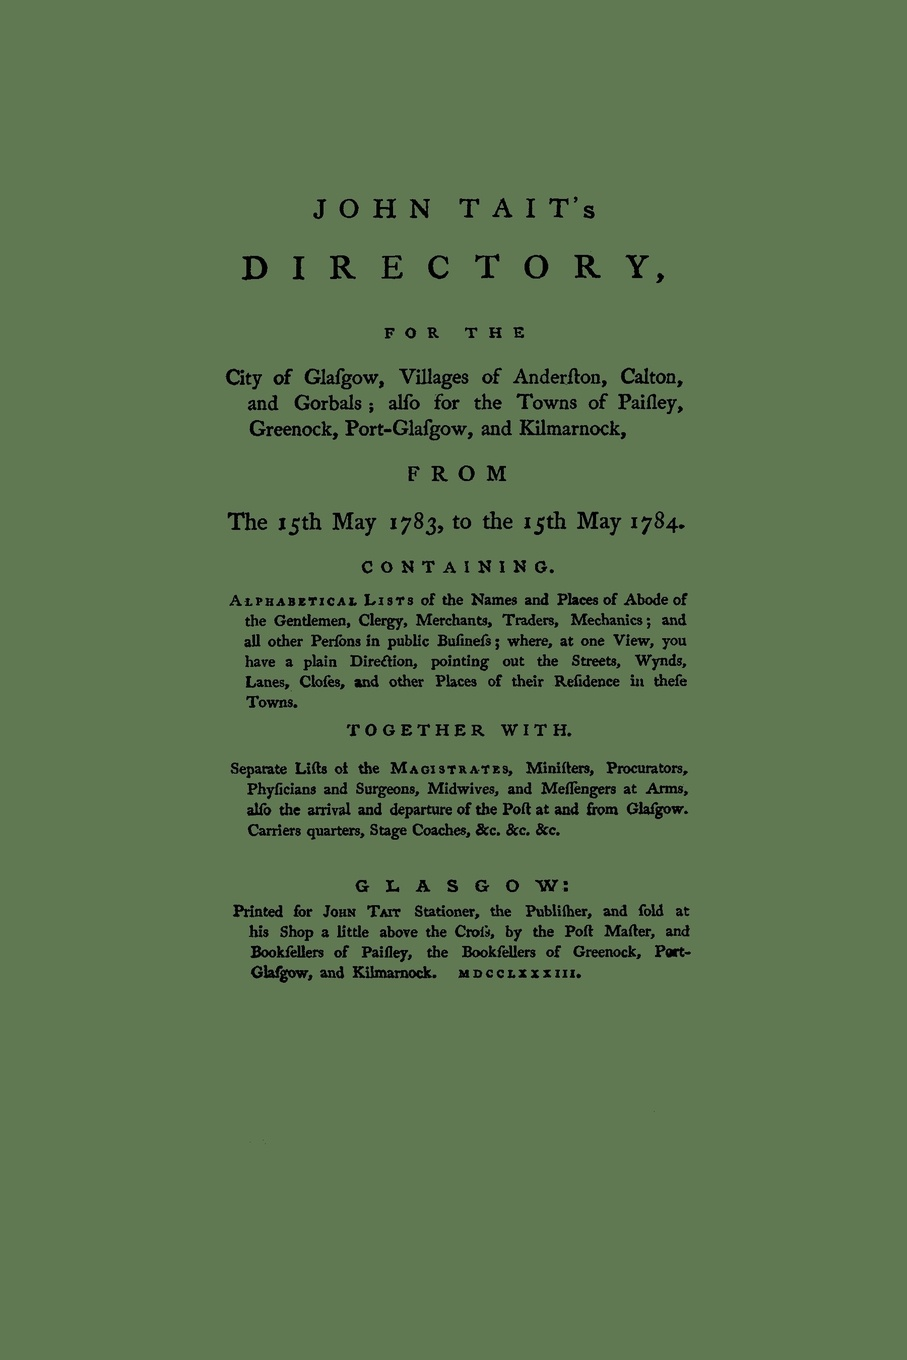 John Tait Directory of Glasgow, with Paisley, Greenock and Port Glasgow 1783-1784 chas and dave glasgow